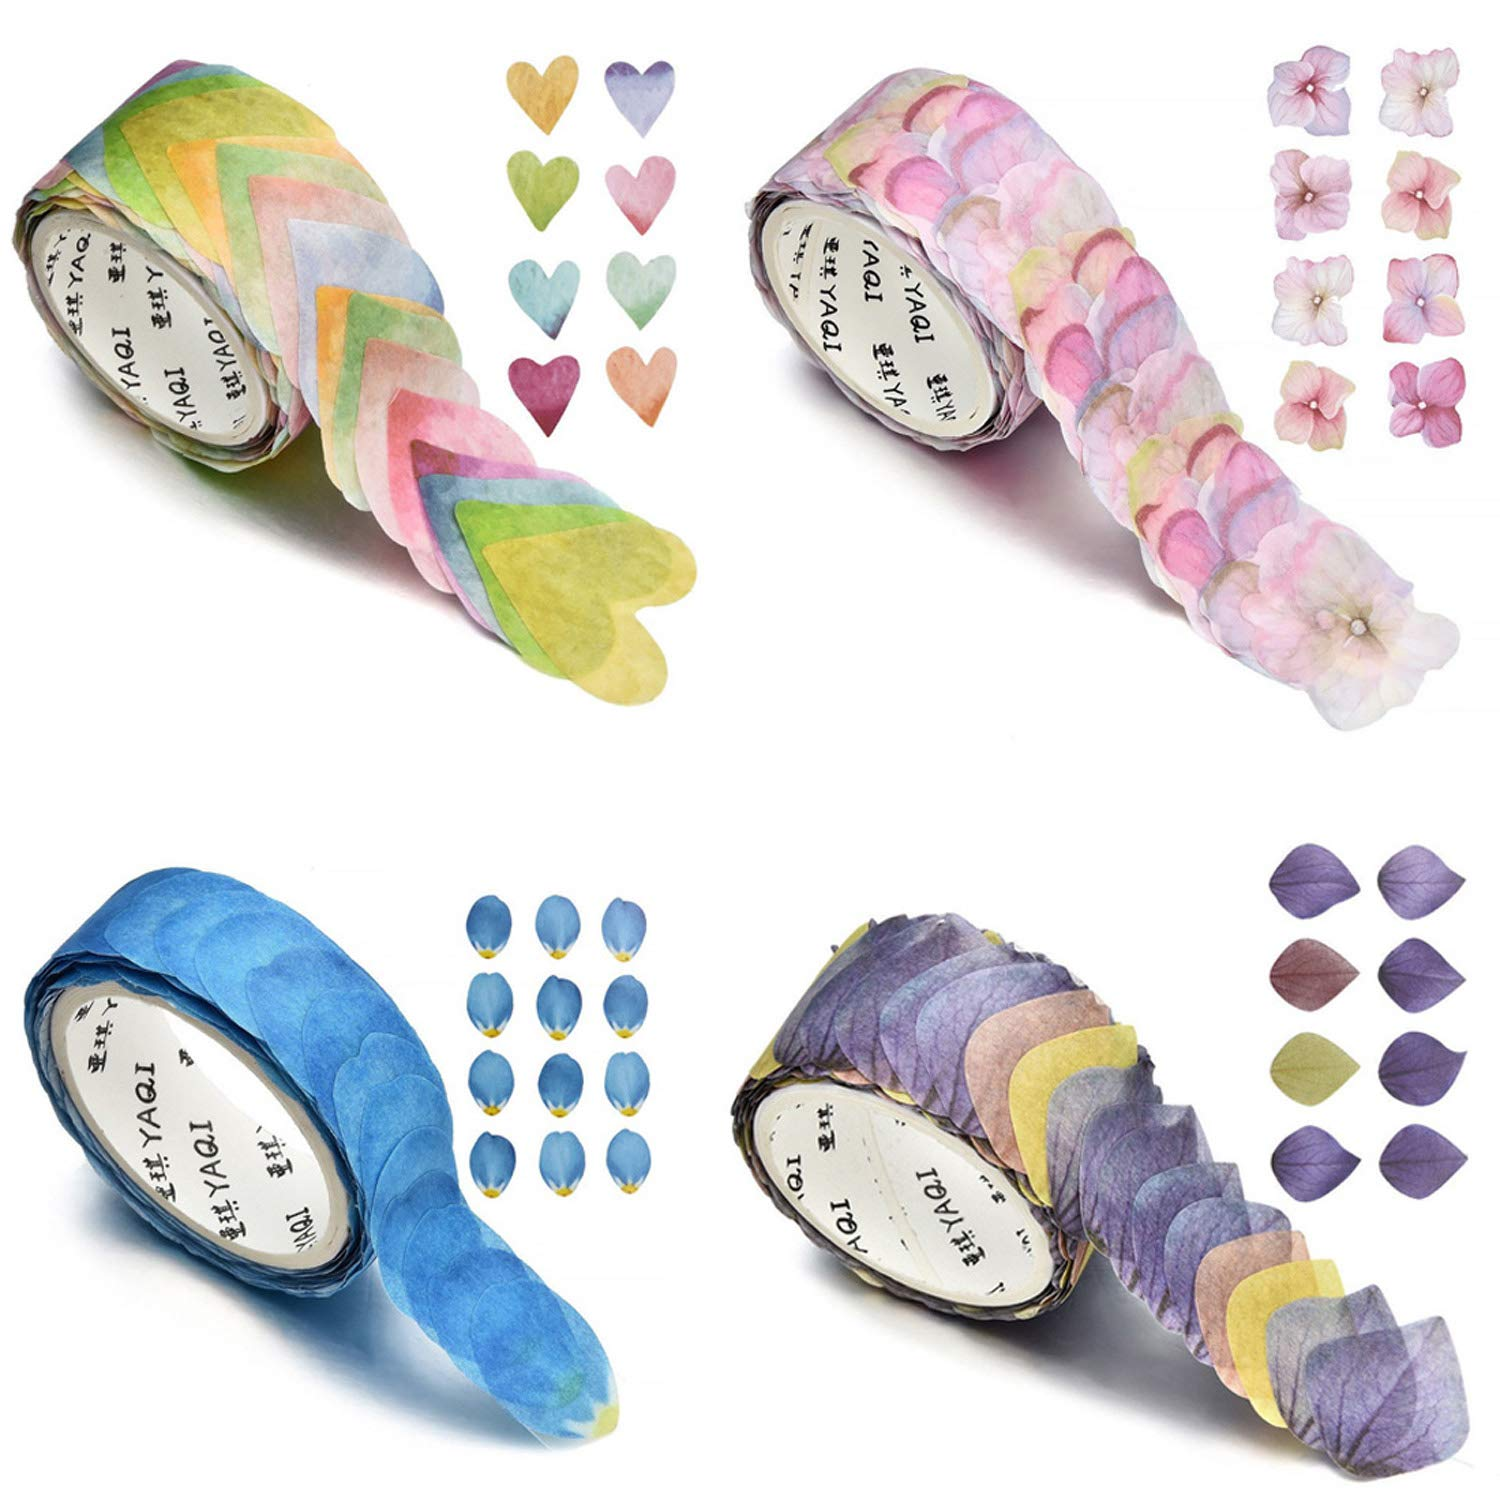 4 Roll Creative Flower Petal Washi Tape, Masking Tape Decorative Decals, DIY Petal Stickers for Scrapbooking, Diary, Bullet Journal, Planner, 200 Petals/Roll